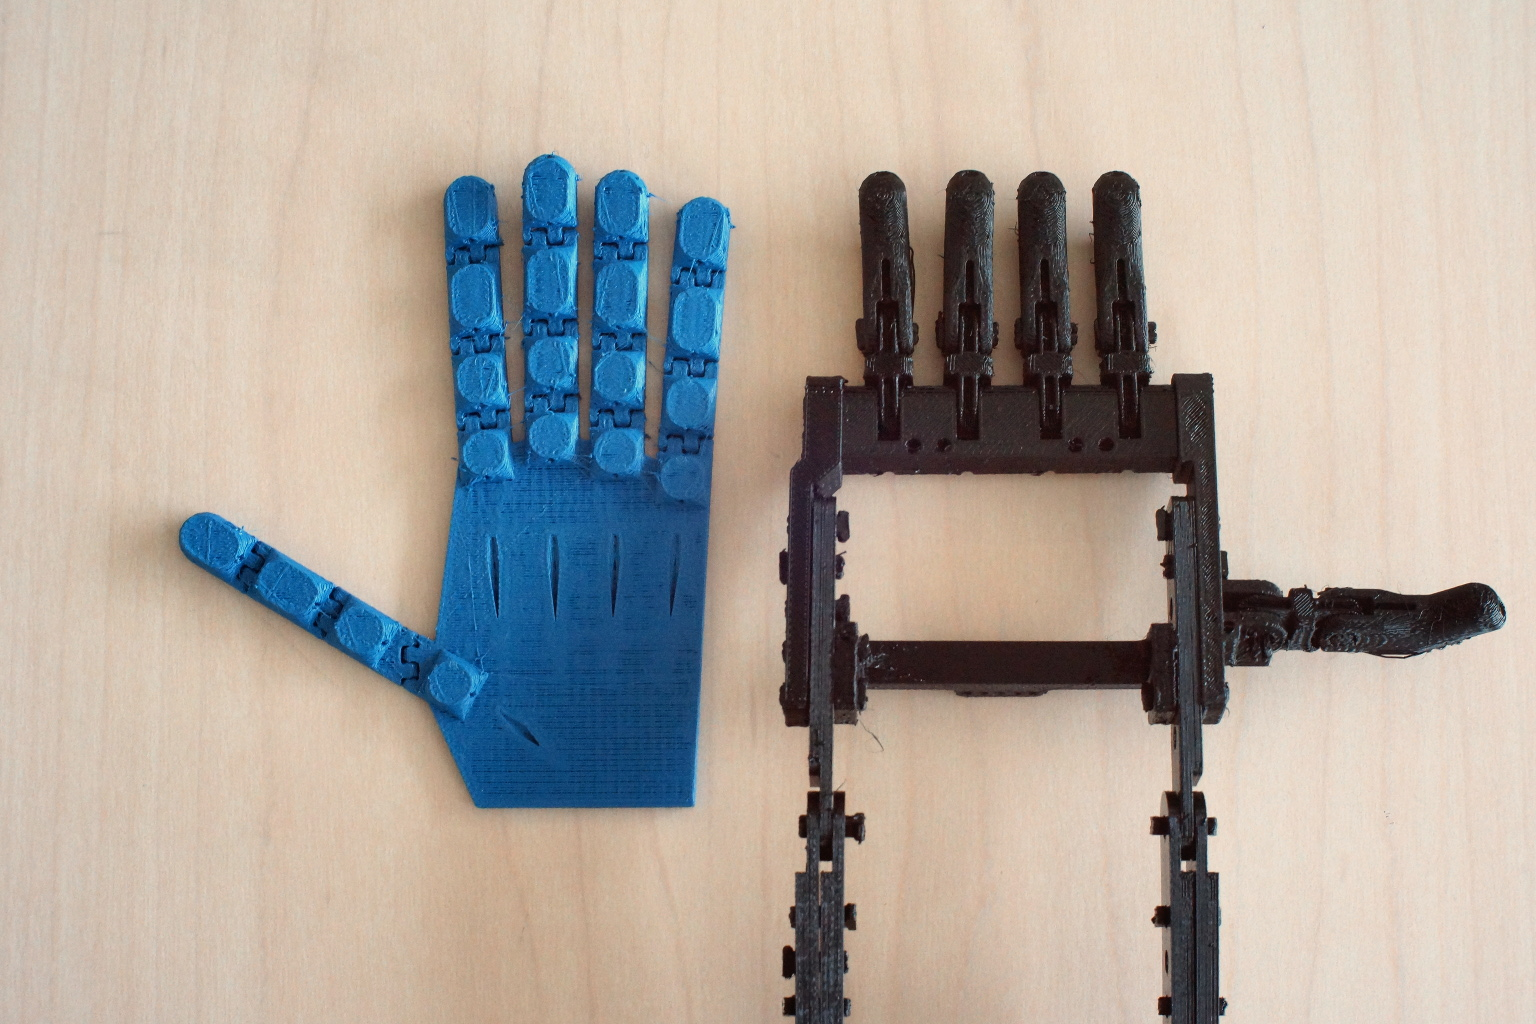 Picture of Prosthetic/Robotic Hand Printable As an Assembled Unit Without Supports